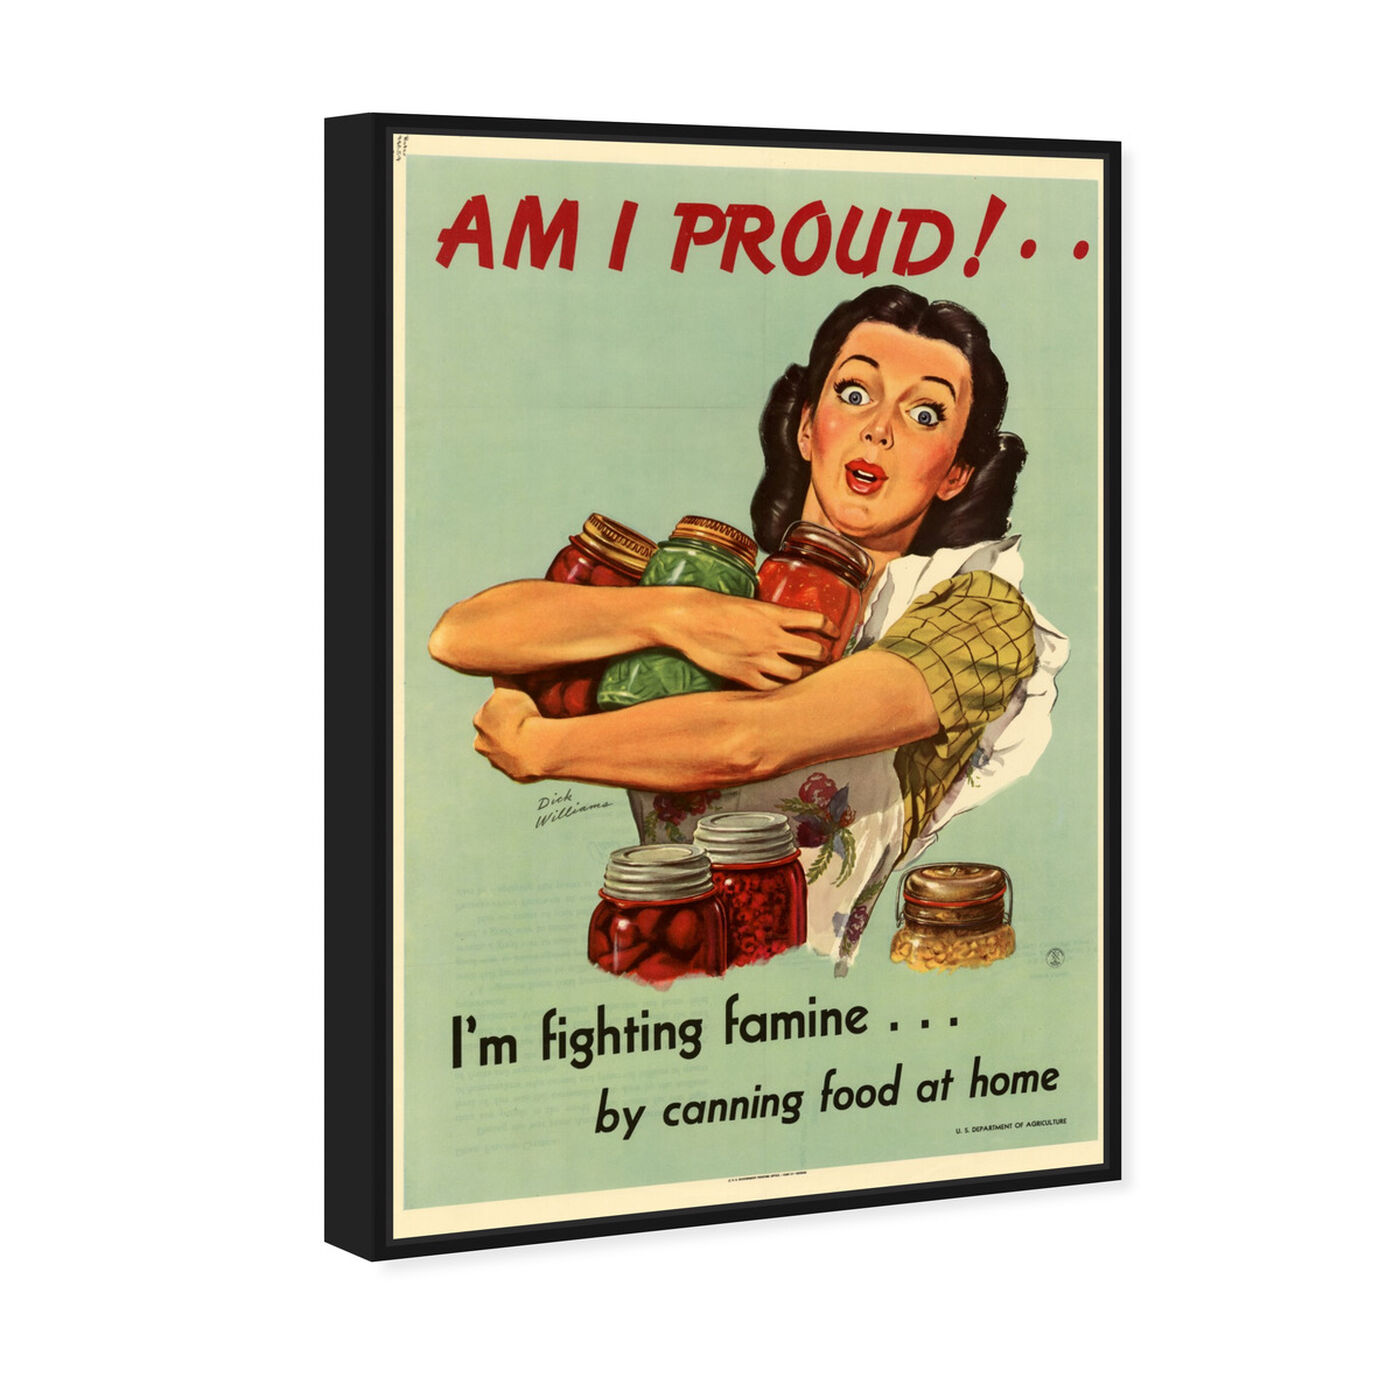 Angled view of I Am Proud featuring advertising and posters art.